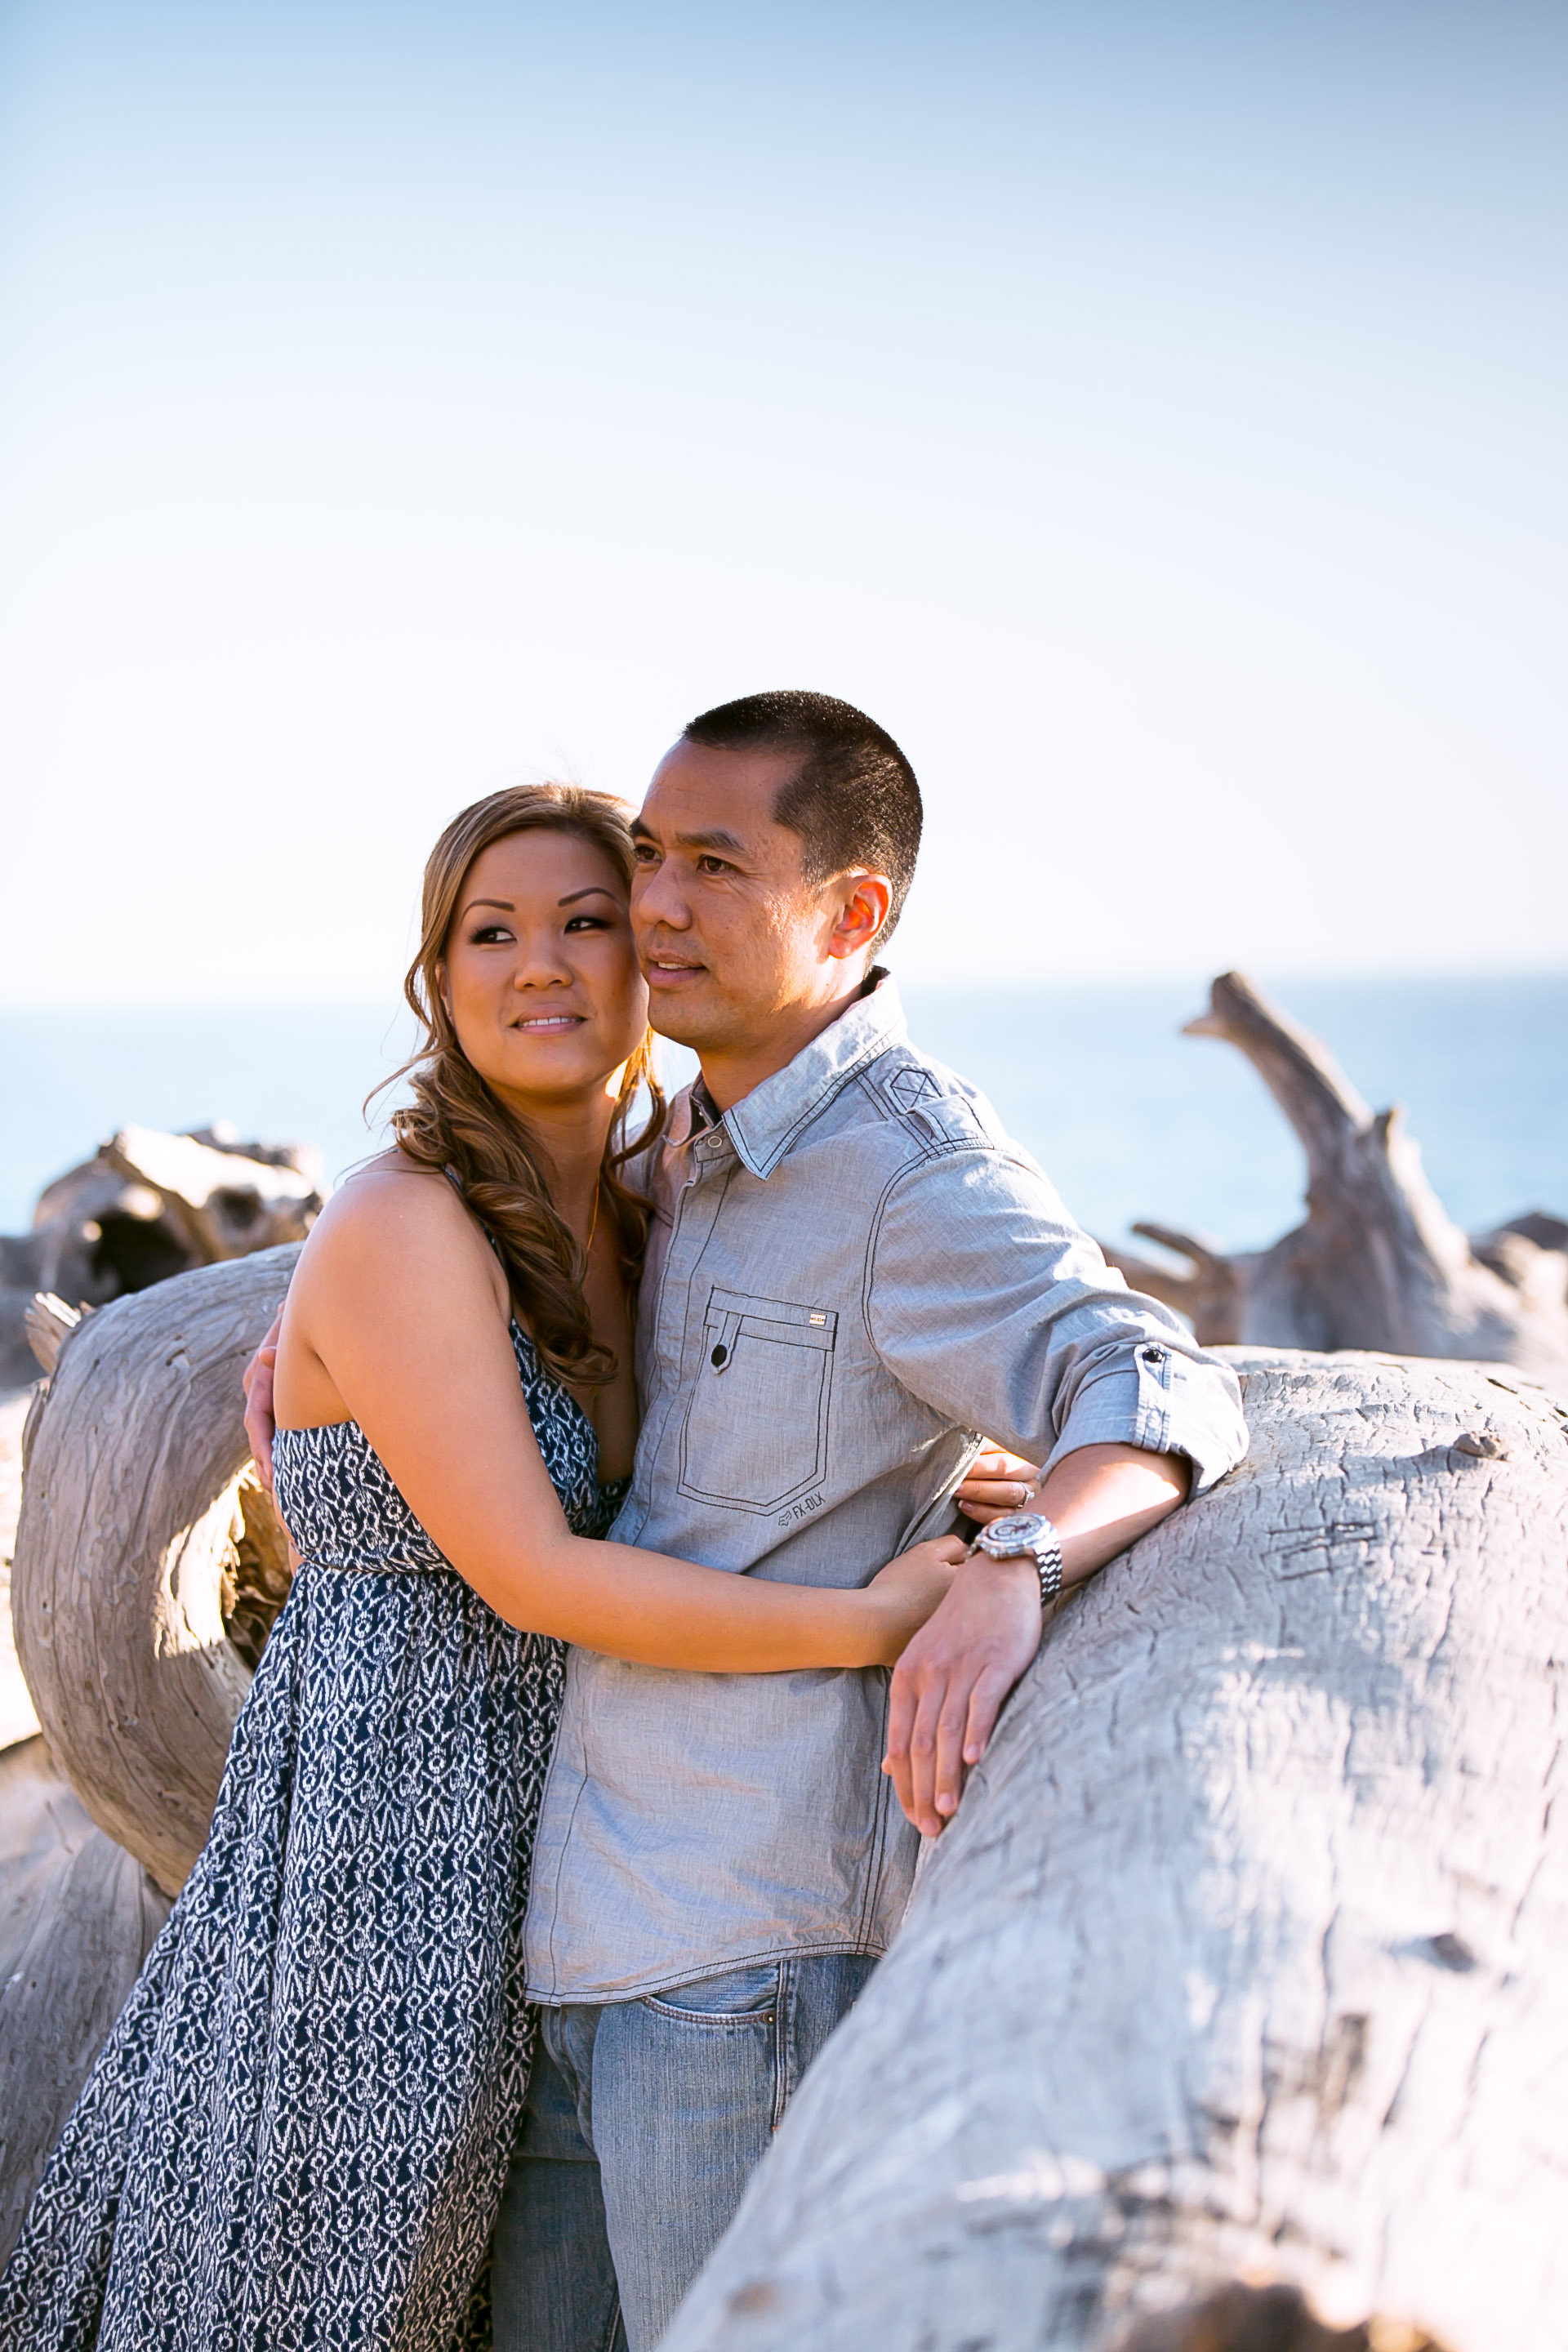 20131020_CHRIS_JEFF_MALIBU_BEACH_ENGAGEMENT_CHRIS_HOLT_PHOTOGRAPHY_002.jpg